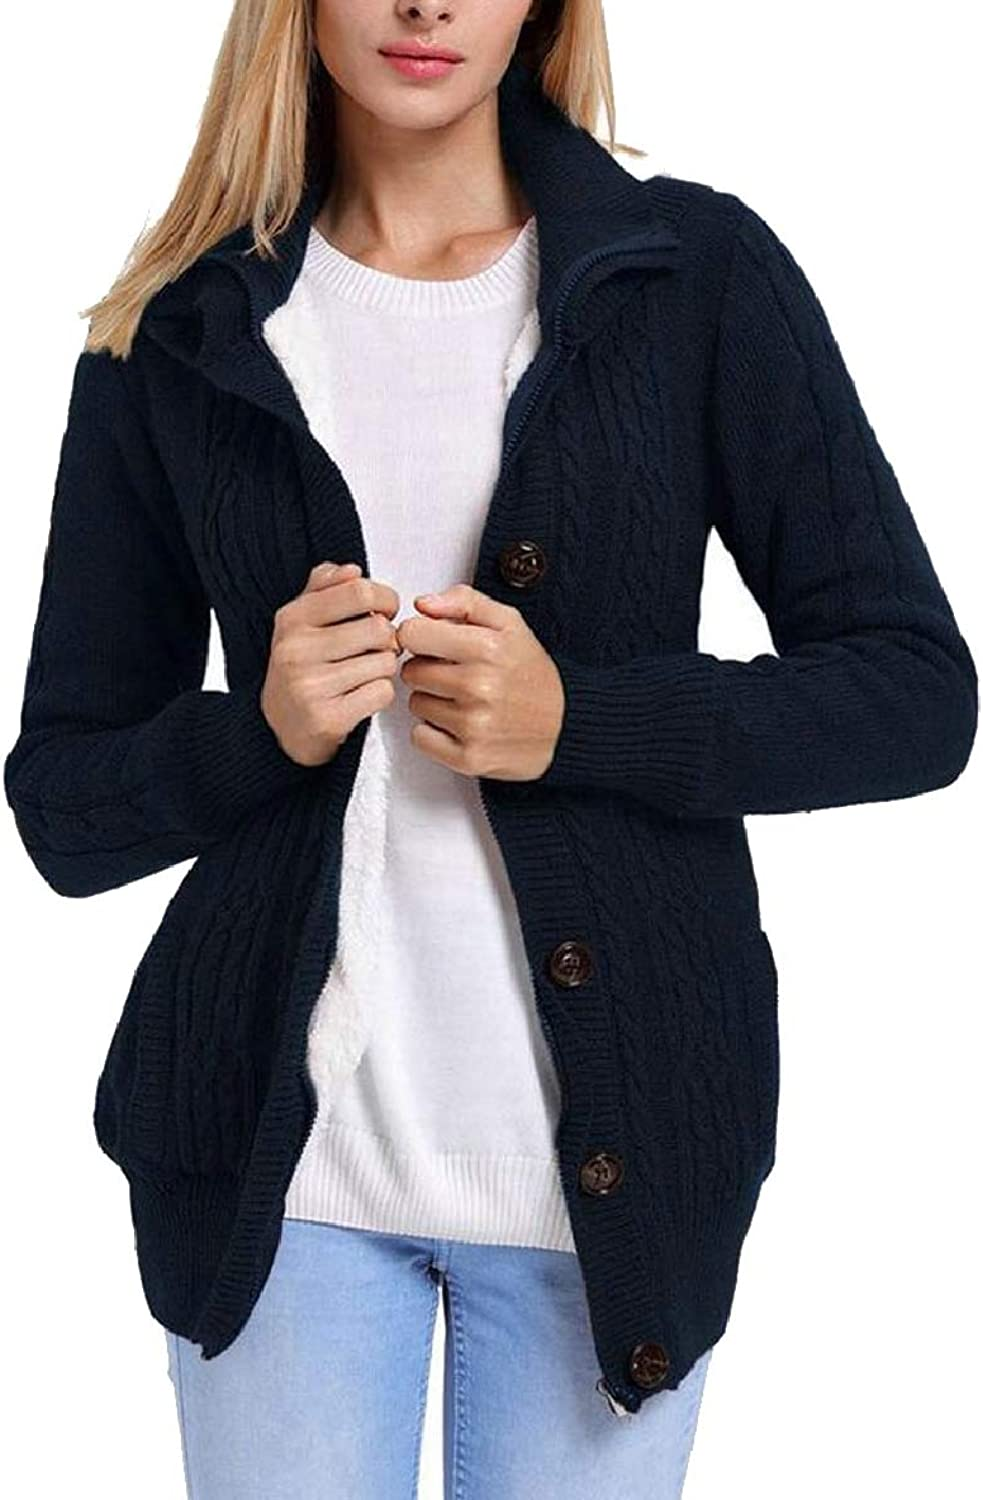 TymhgtCA Womens Cardigan Sweaters Cable Knit Open Front Hooded Sweater Coat